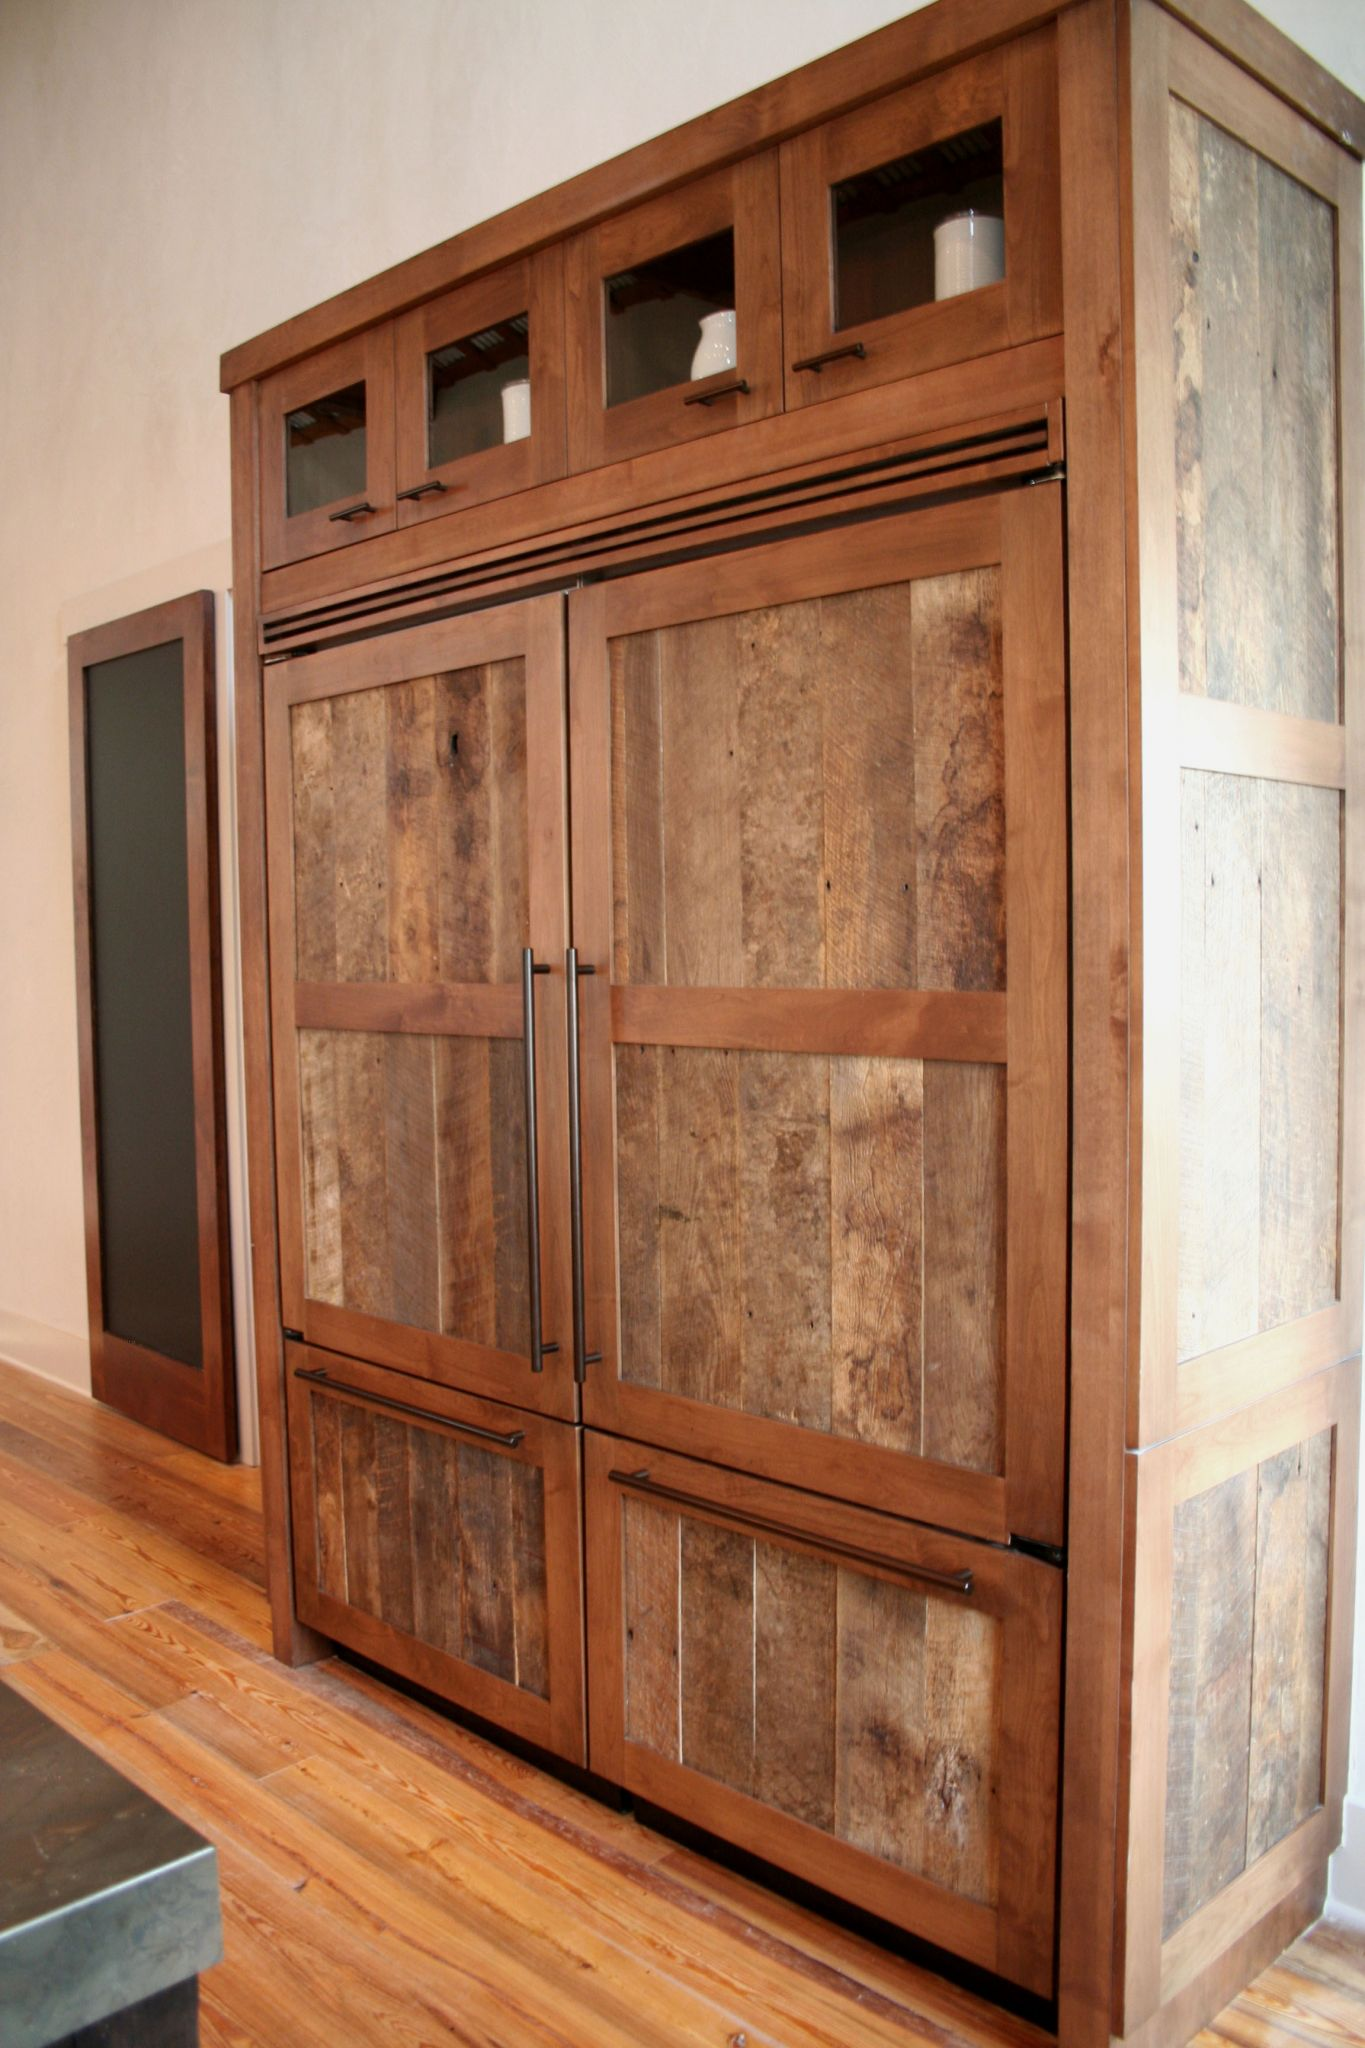 Reclaimed Wood Kitchen Cabinets Denver Cabinets Bkc Kitchen And Bath